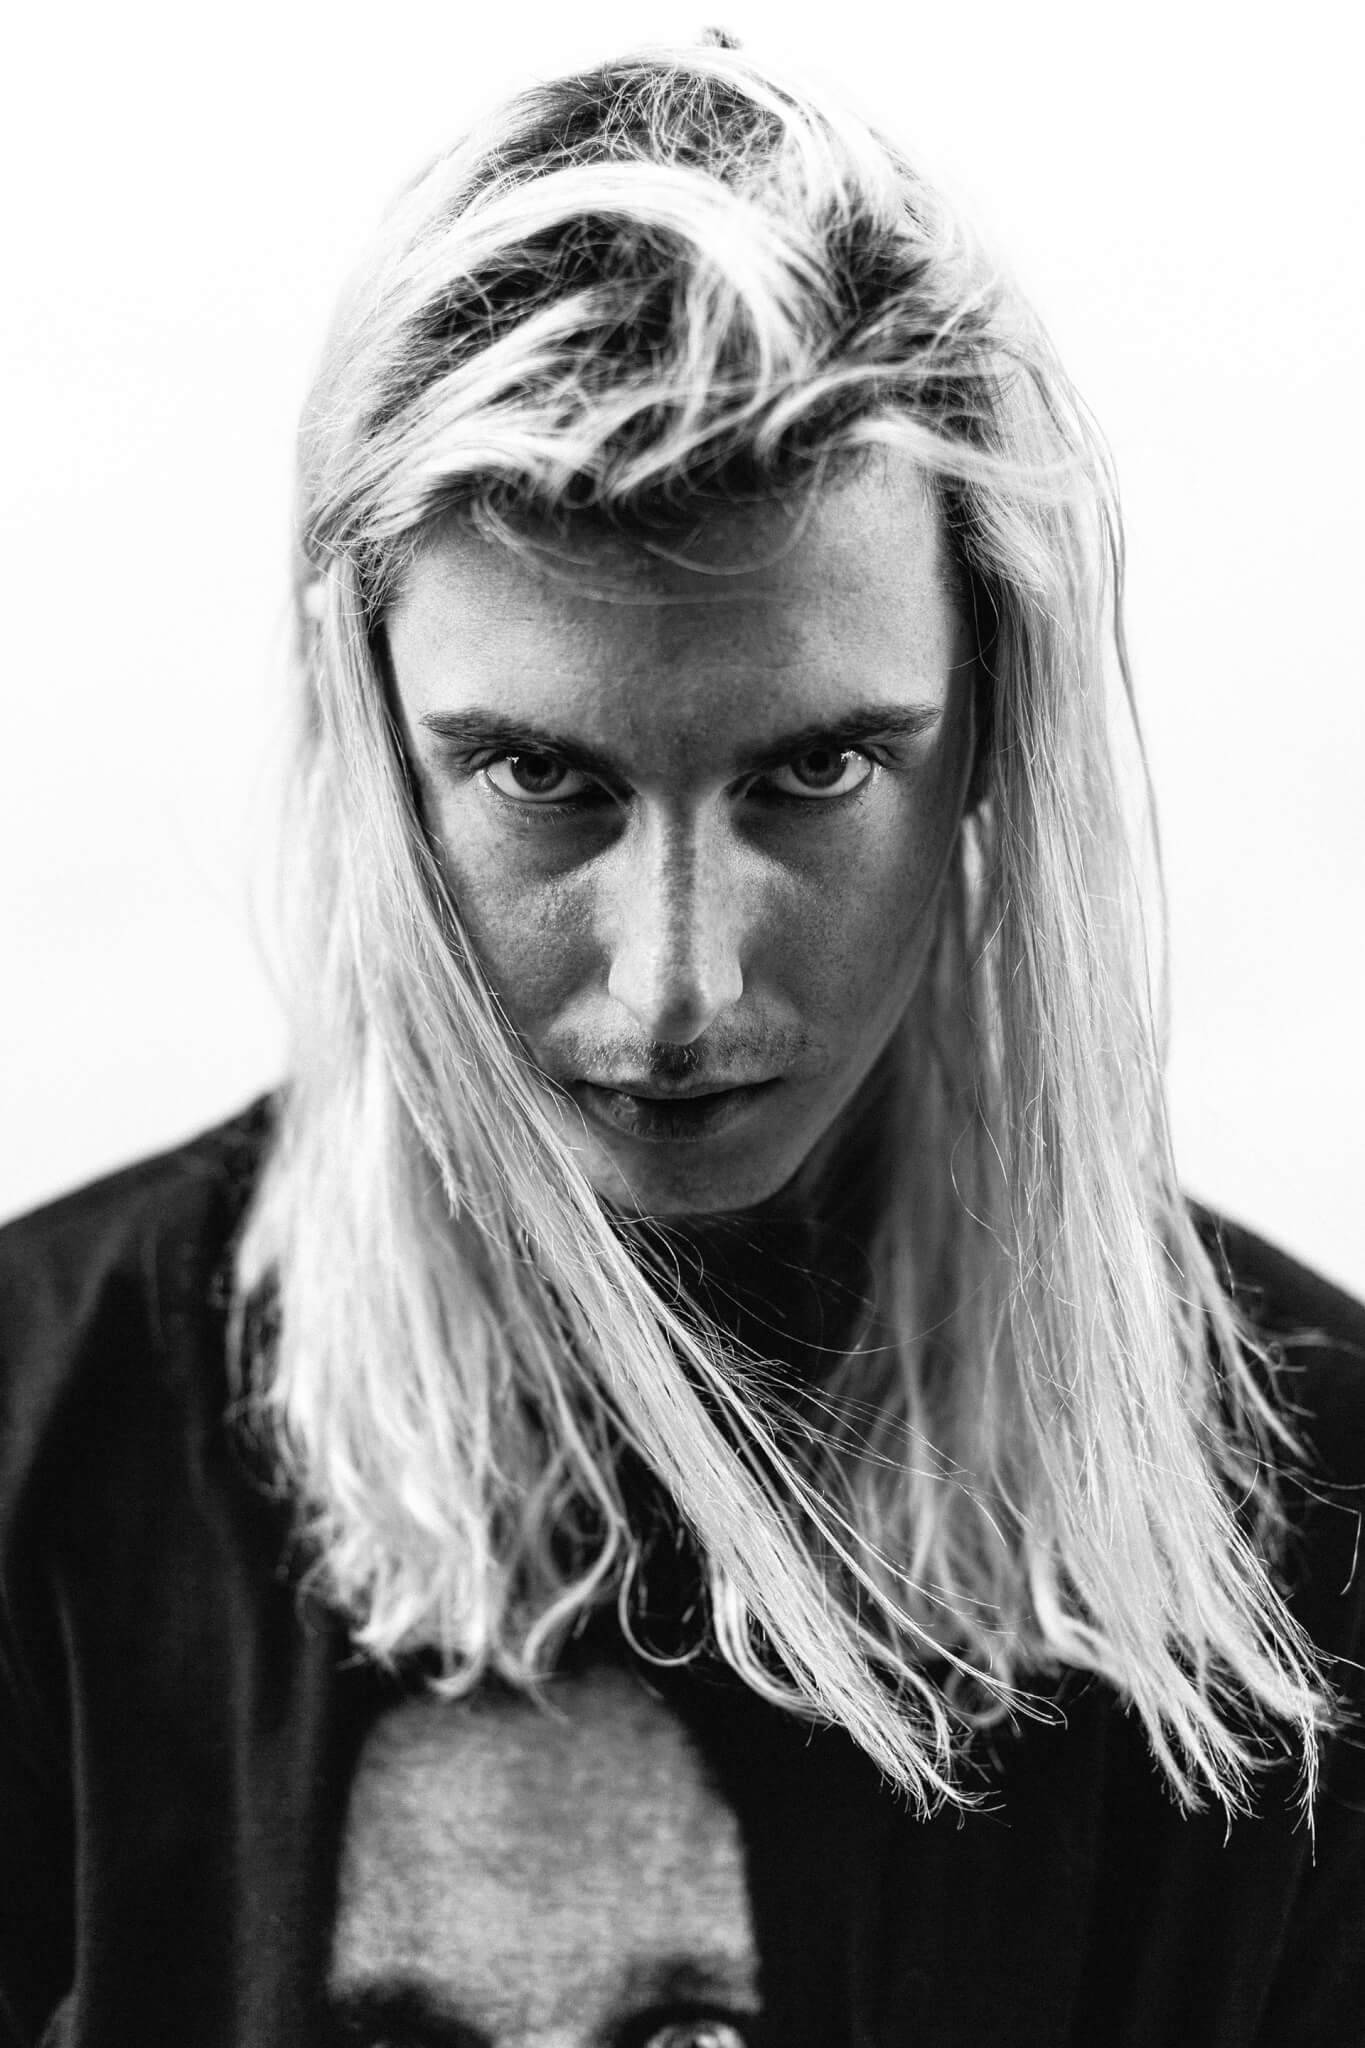 GHOSTEMANE – CRUCIBLE (LYRICS)